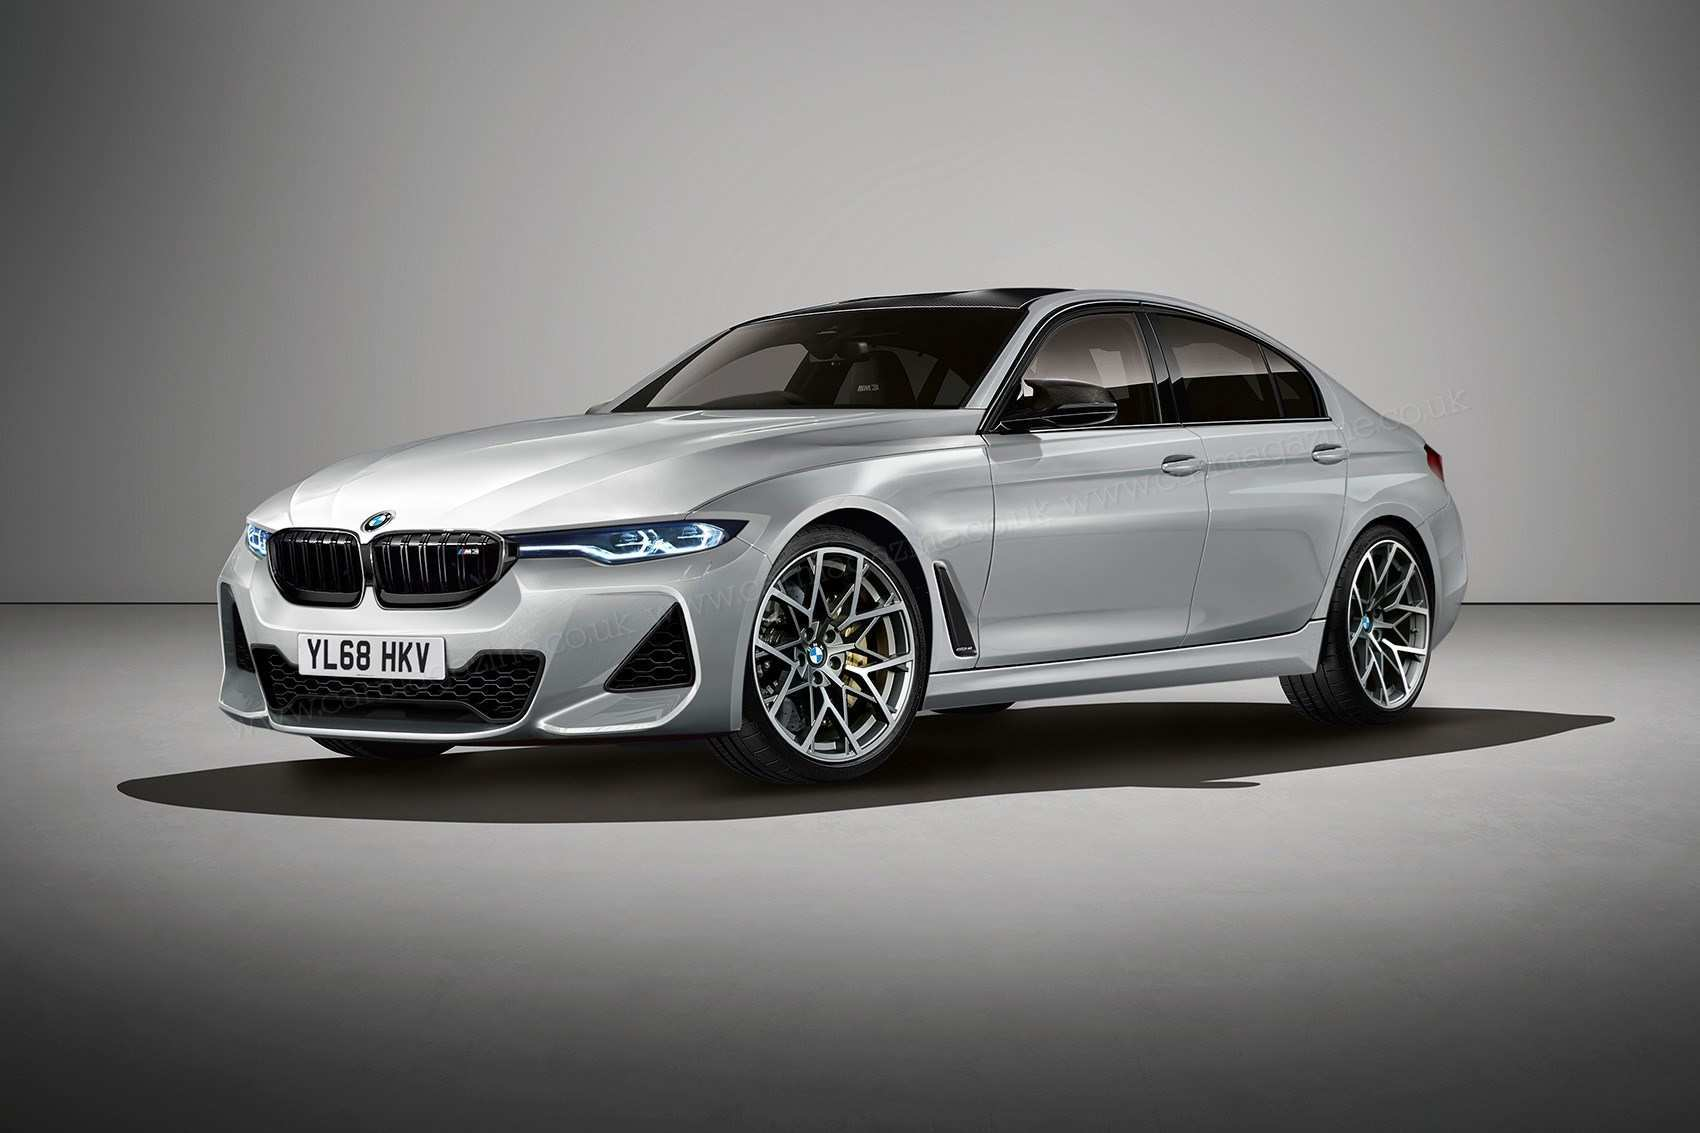 52 The 2020 Bmw Models Redesign And Concept